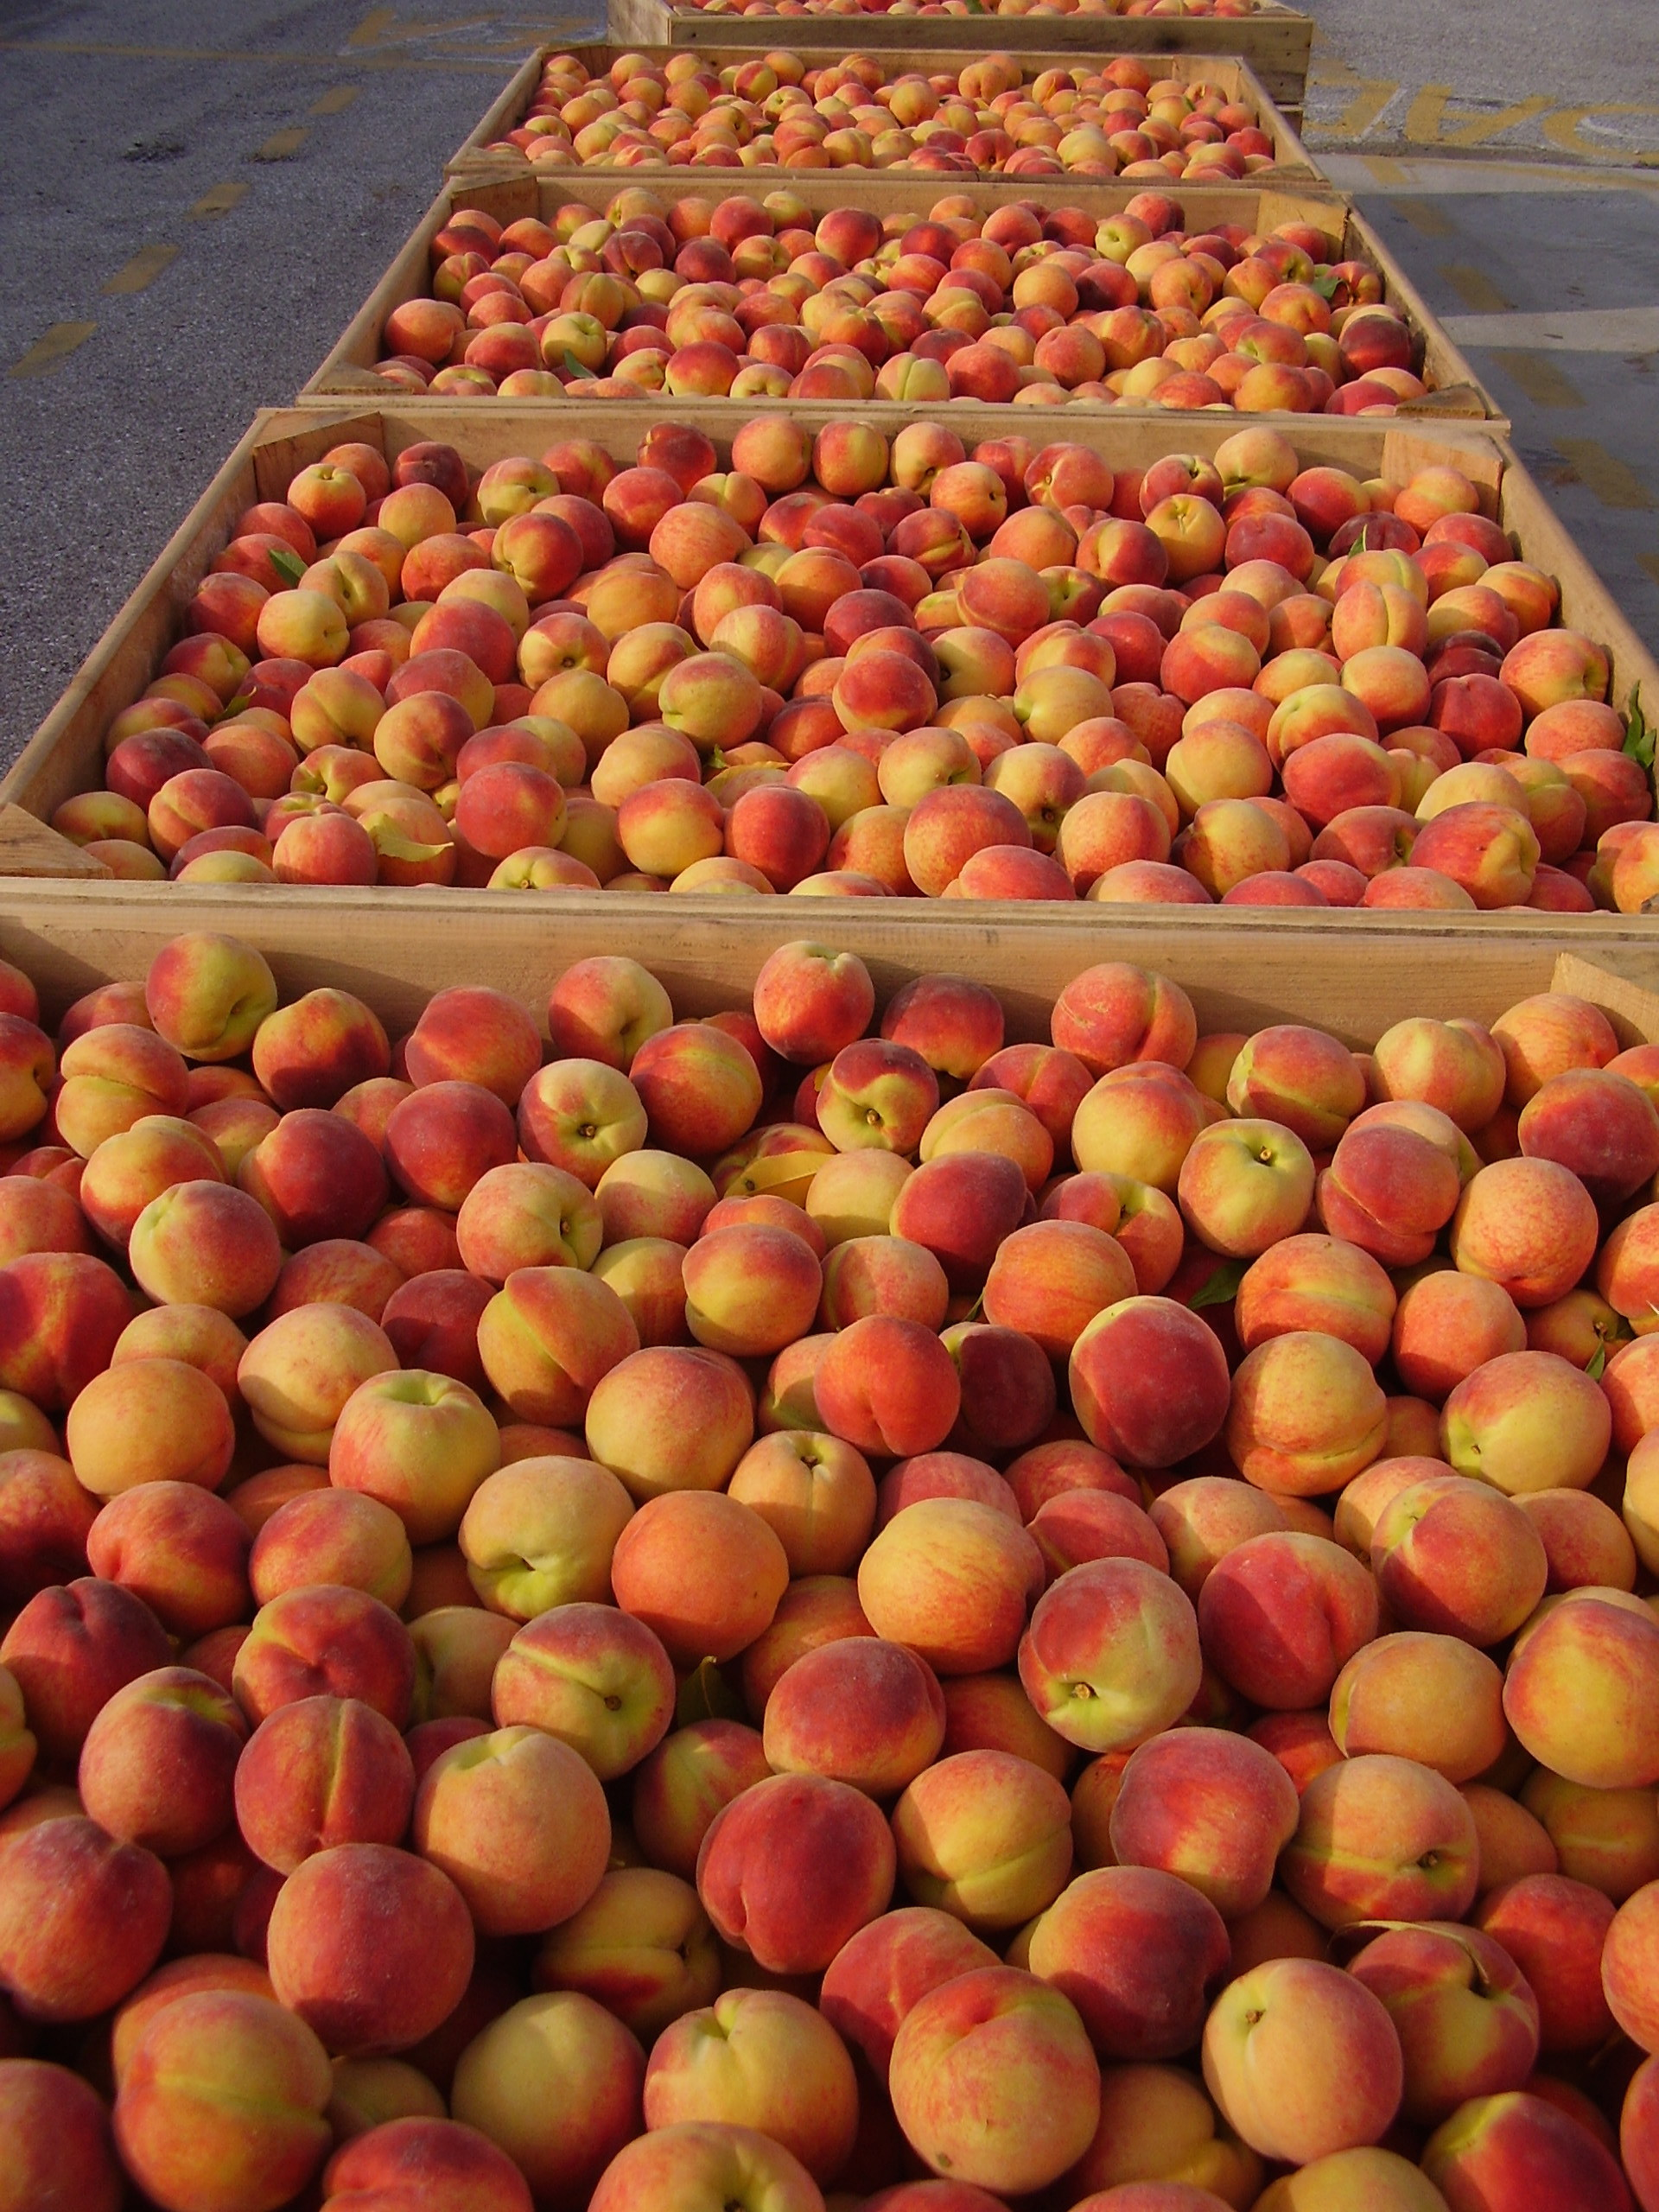 Cornmeal Loaf Cake with Nectarines or Peaches - Kuhn Orchards